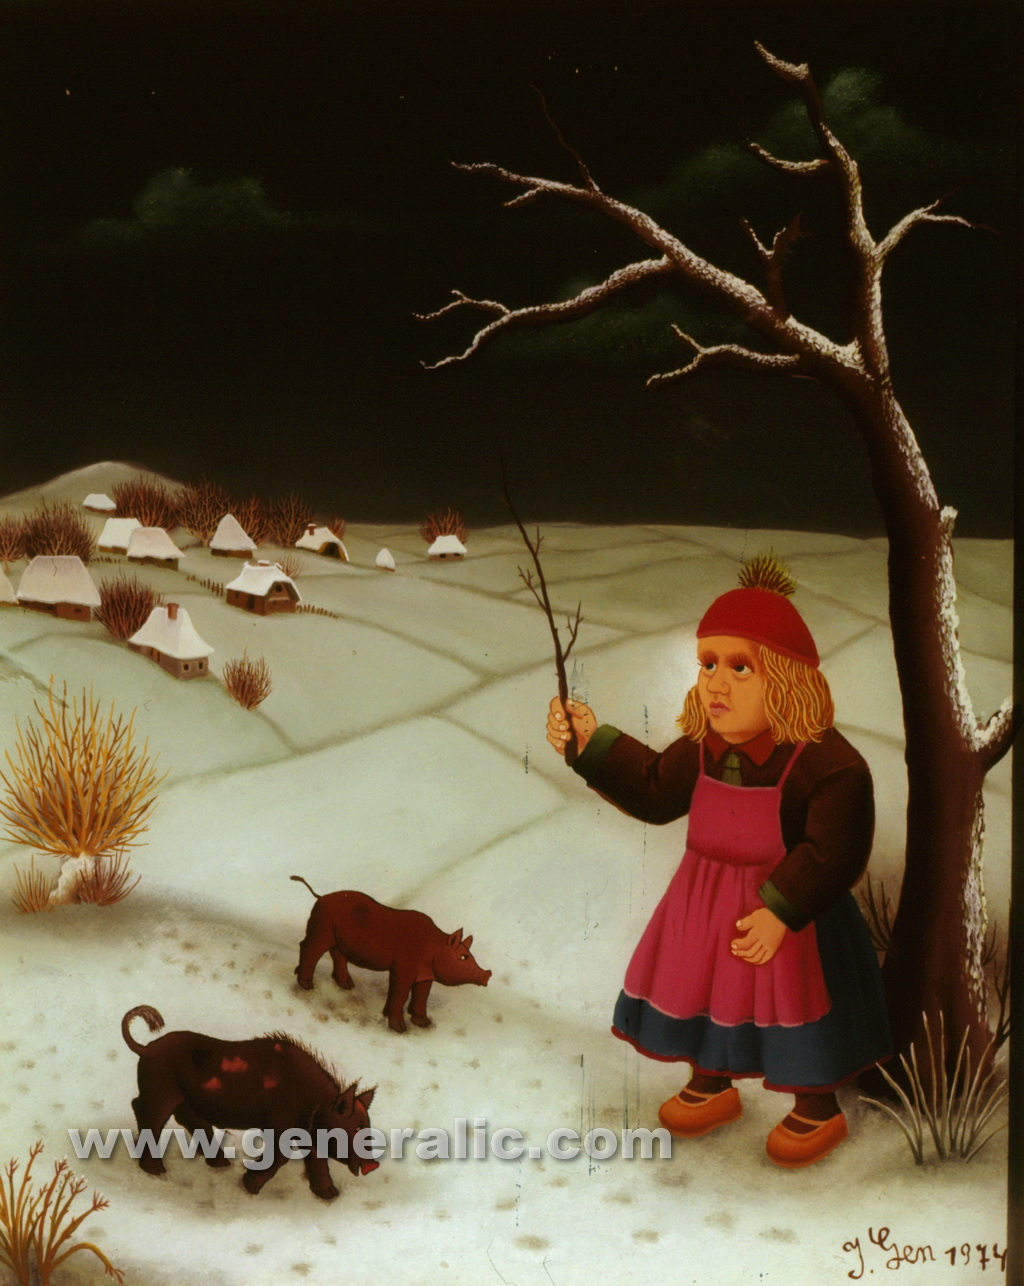 Ivan Generalic, 1974, Little girl with pigs, oil on glass